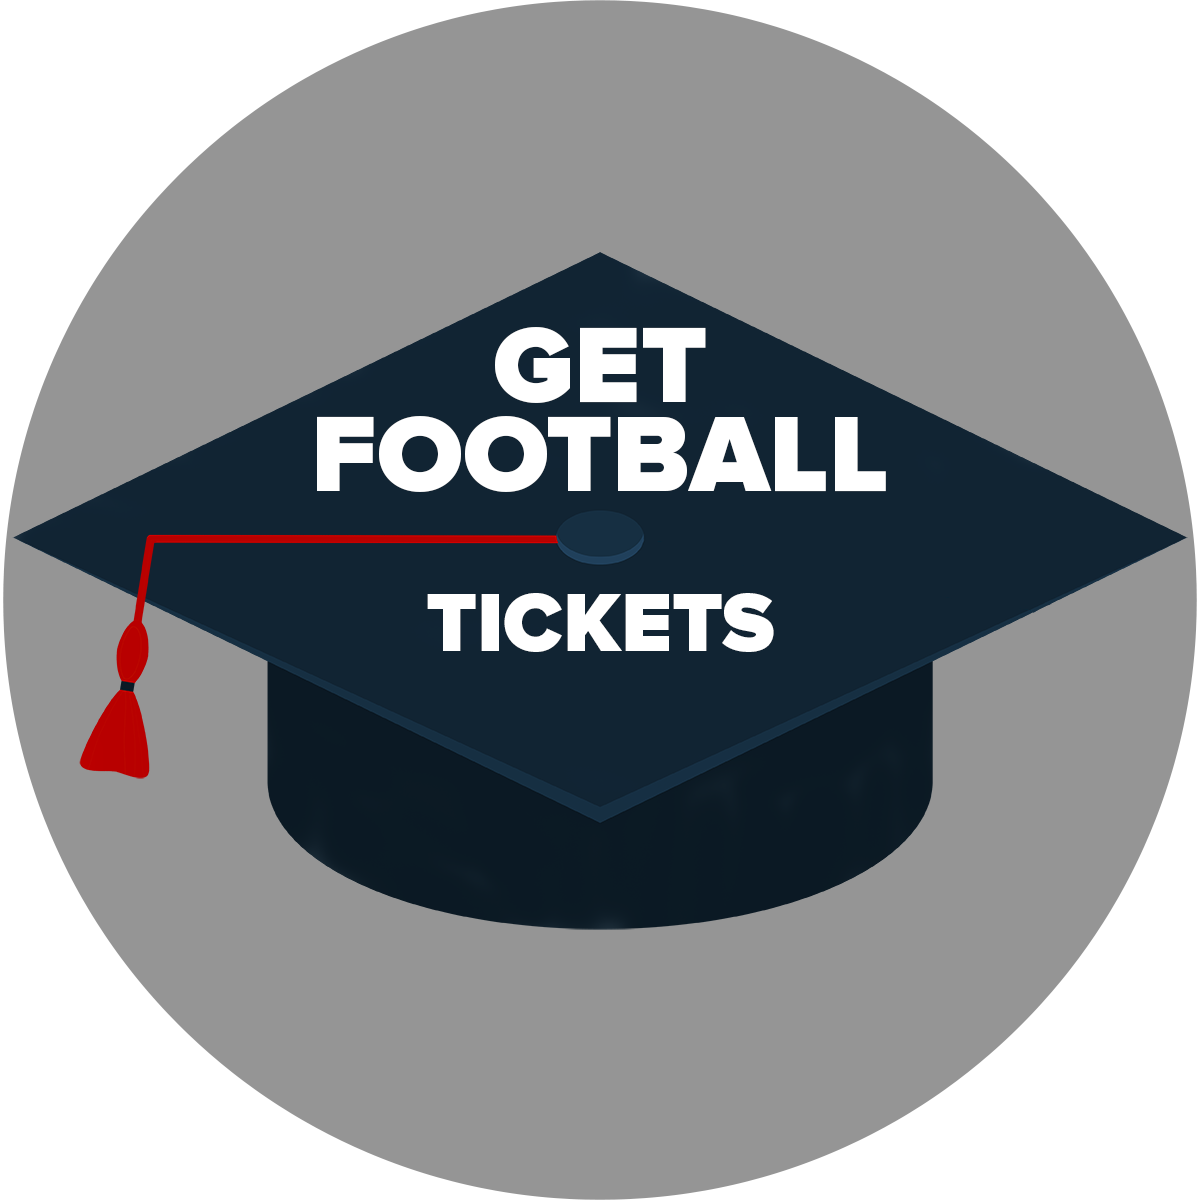 Football ticket information